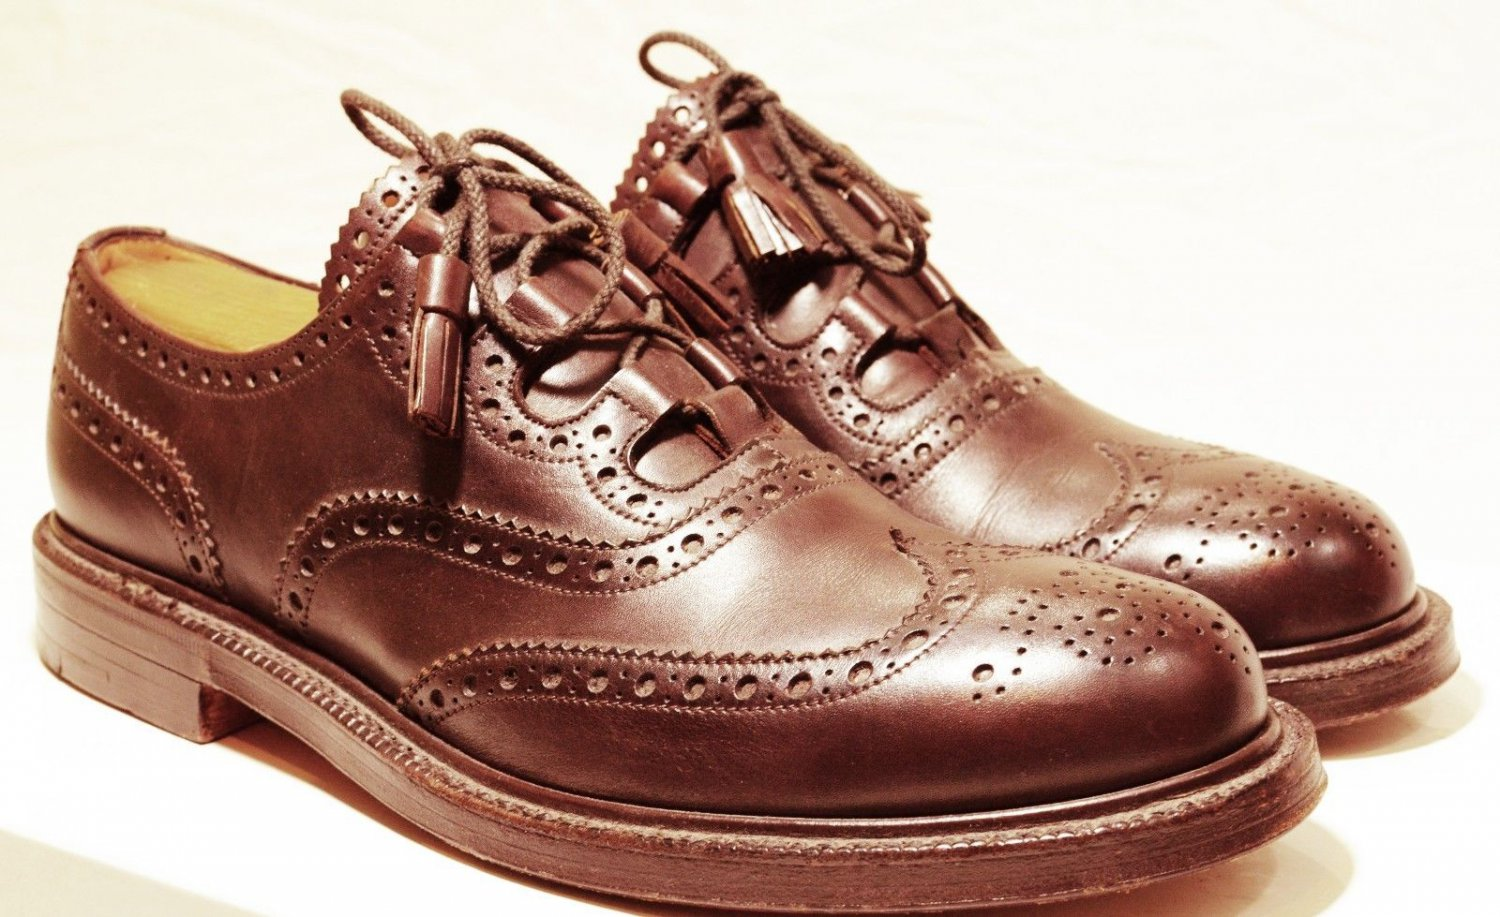 Size 8 Uk Highland Kilt Brown Leather Shoes Ghillie Brogues Leather Sole And Leather Upper